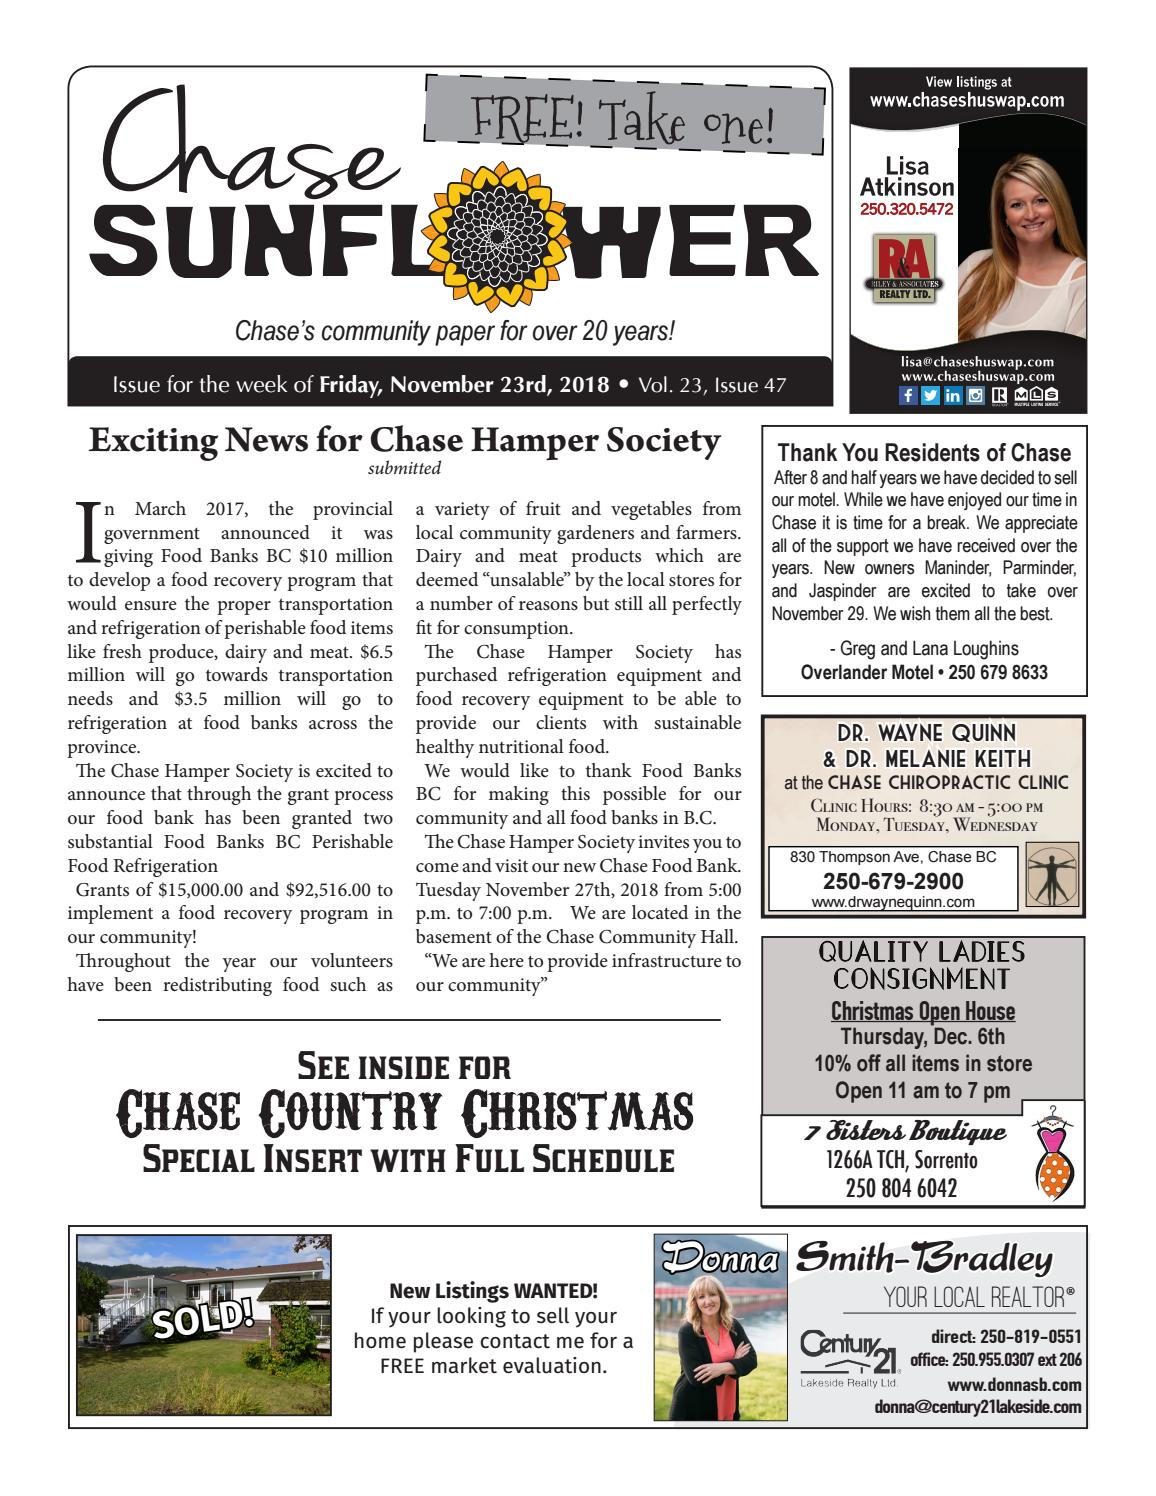 Chase Sunflower - November 23rd, 2018 with Chase Country Christmas ...